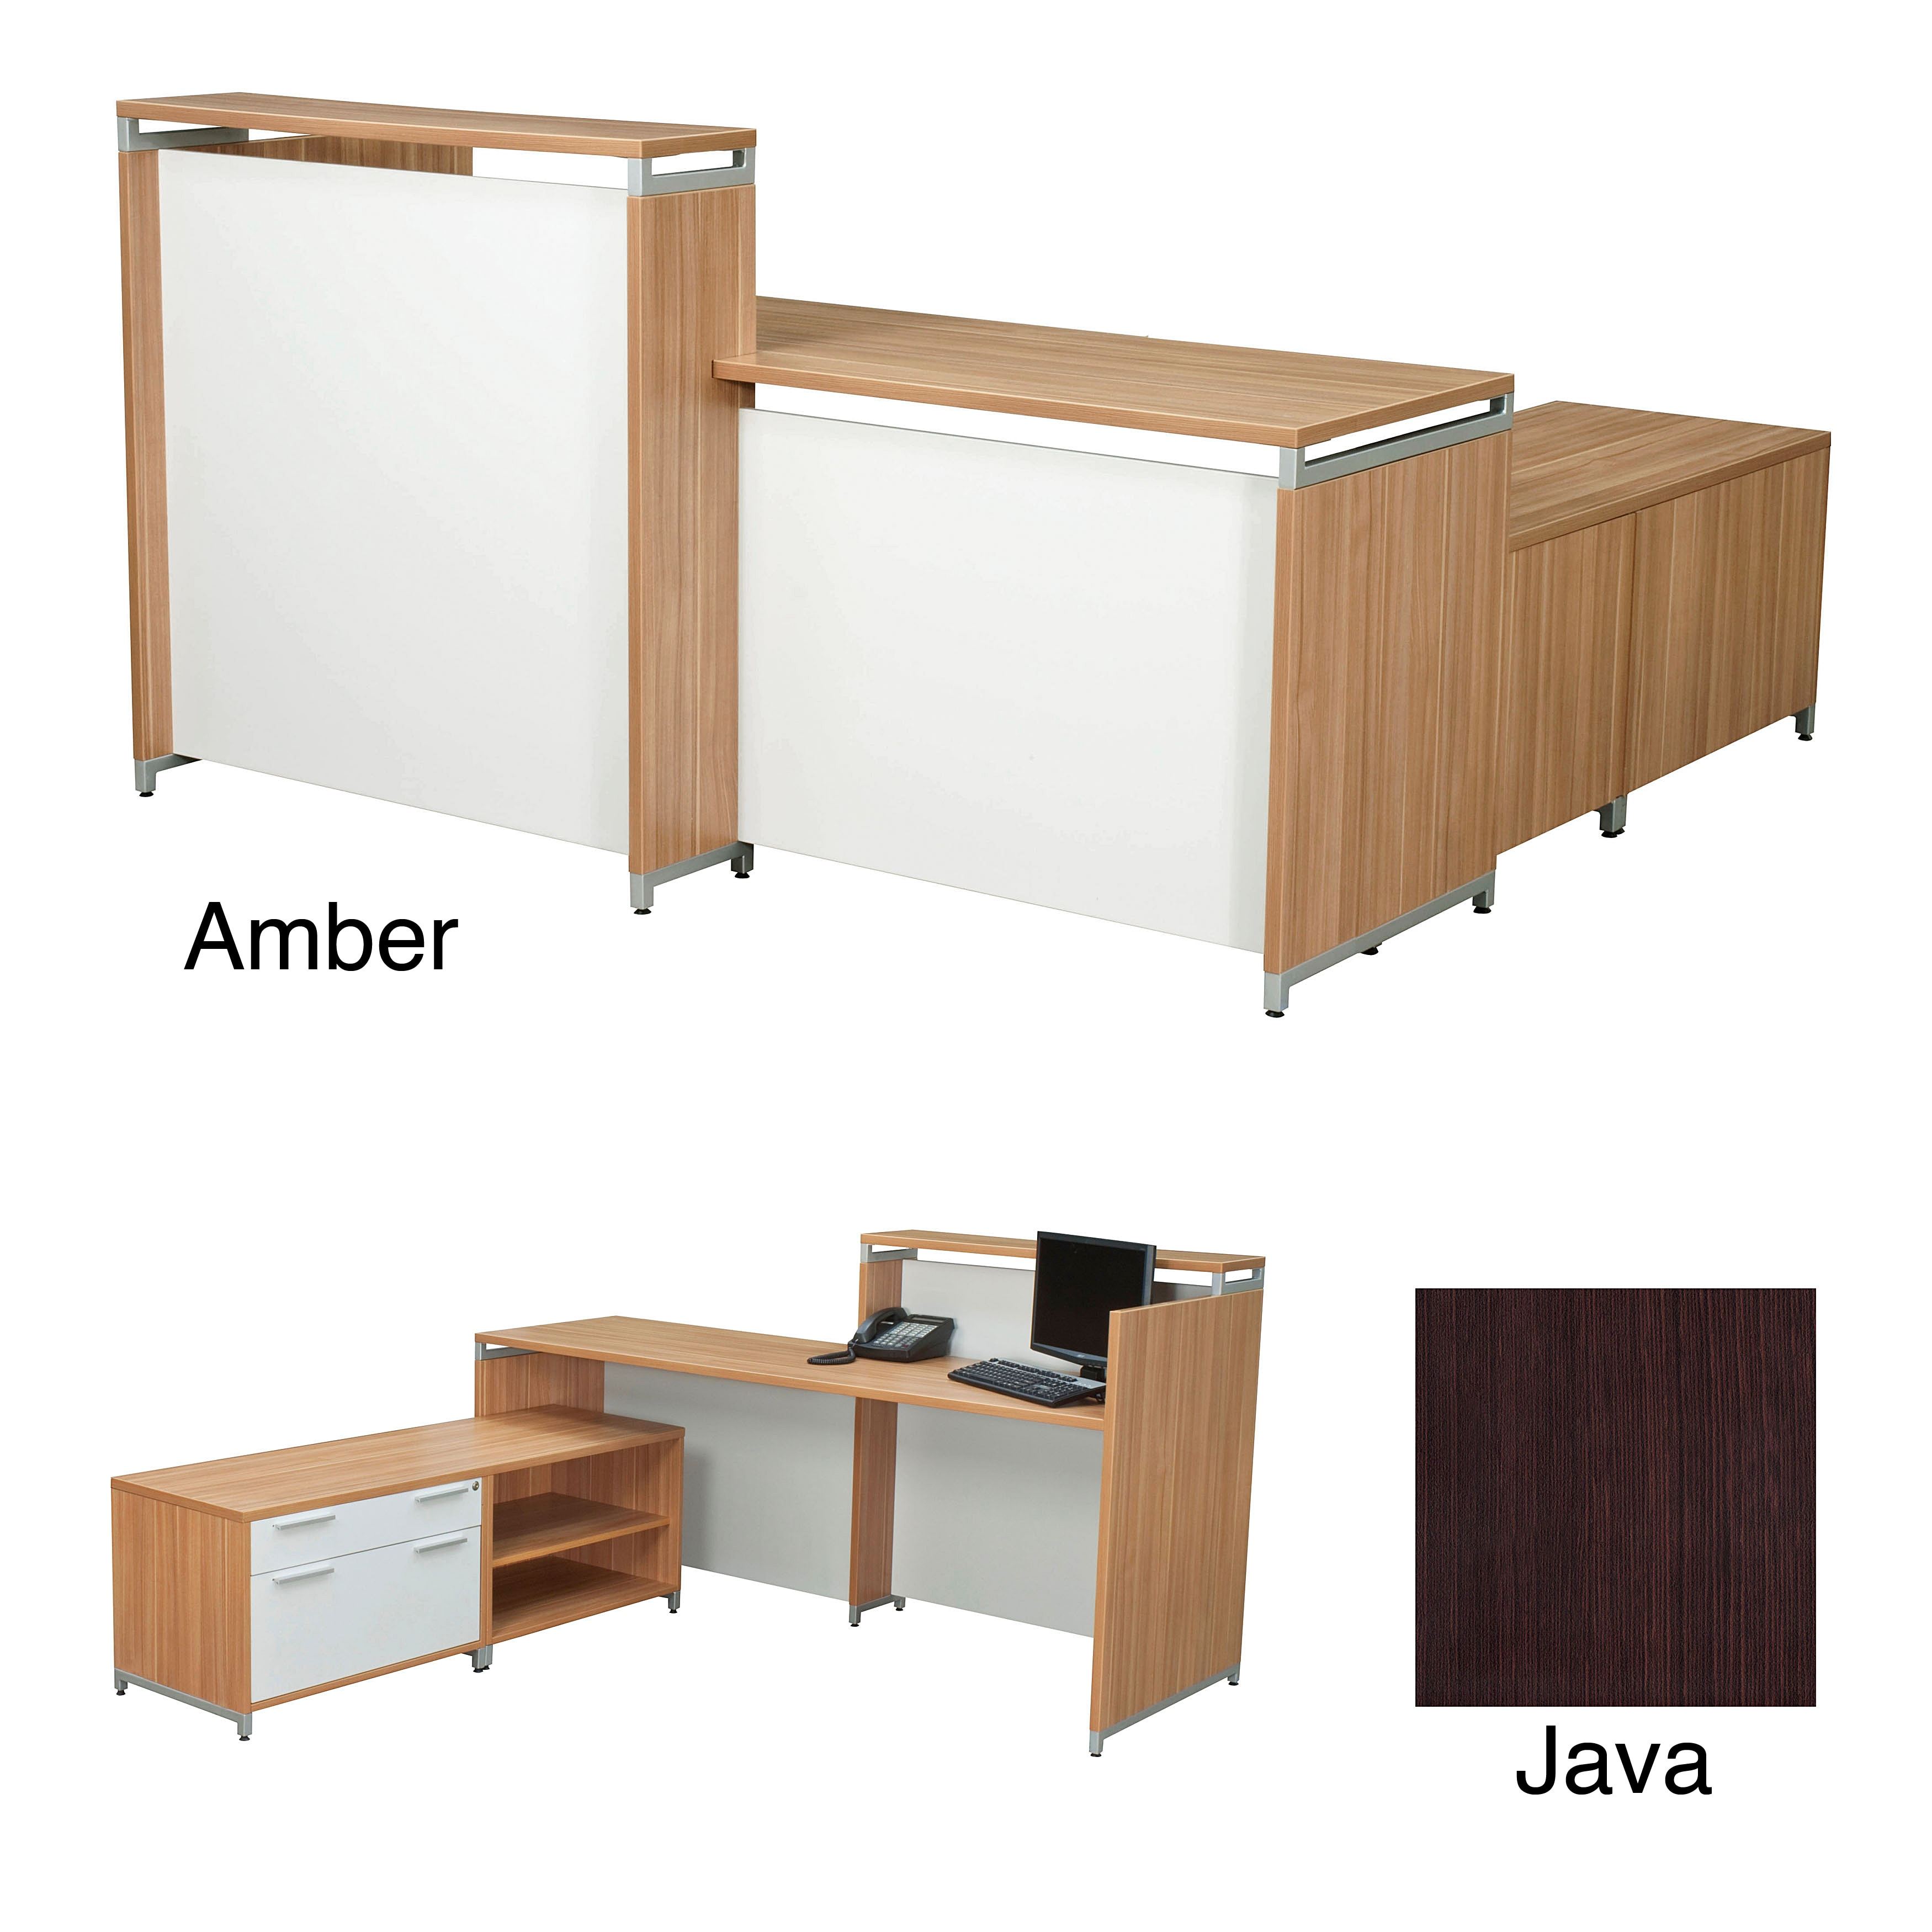 Ada Height For Reception Desk images